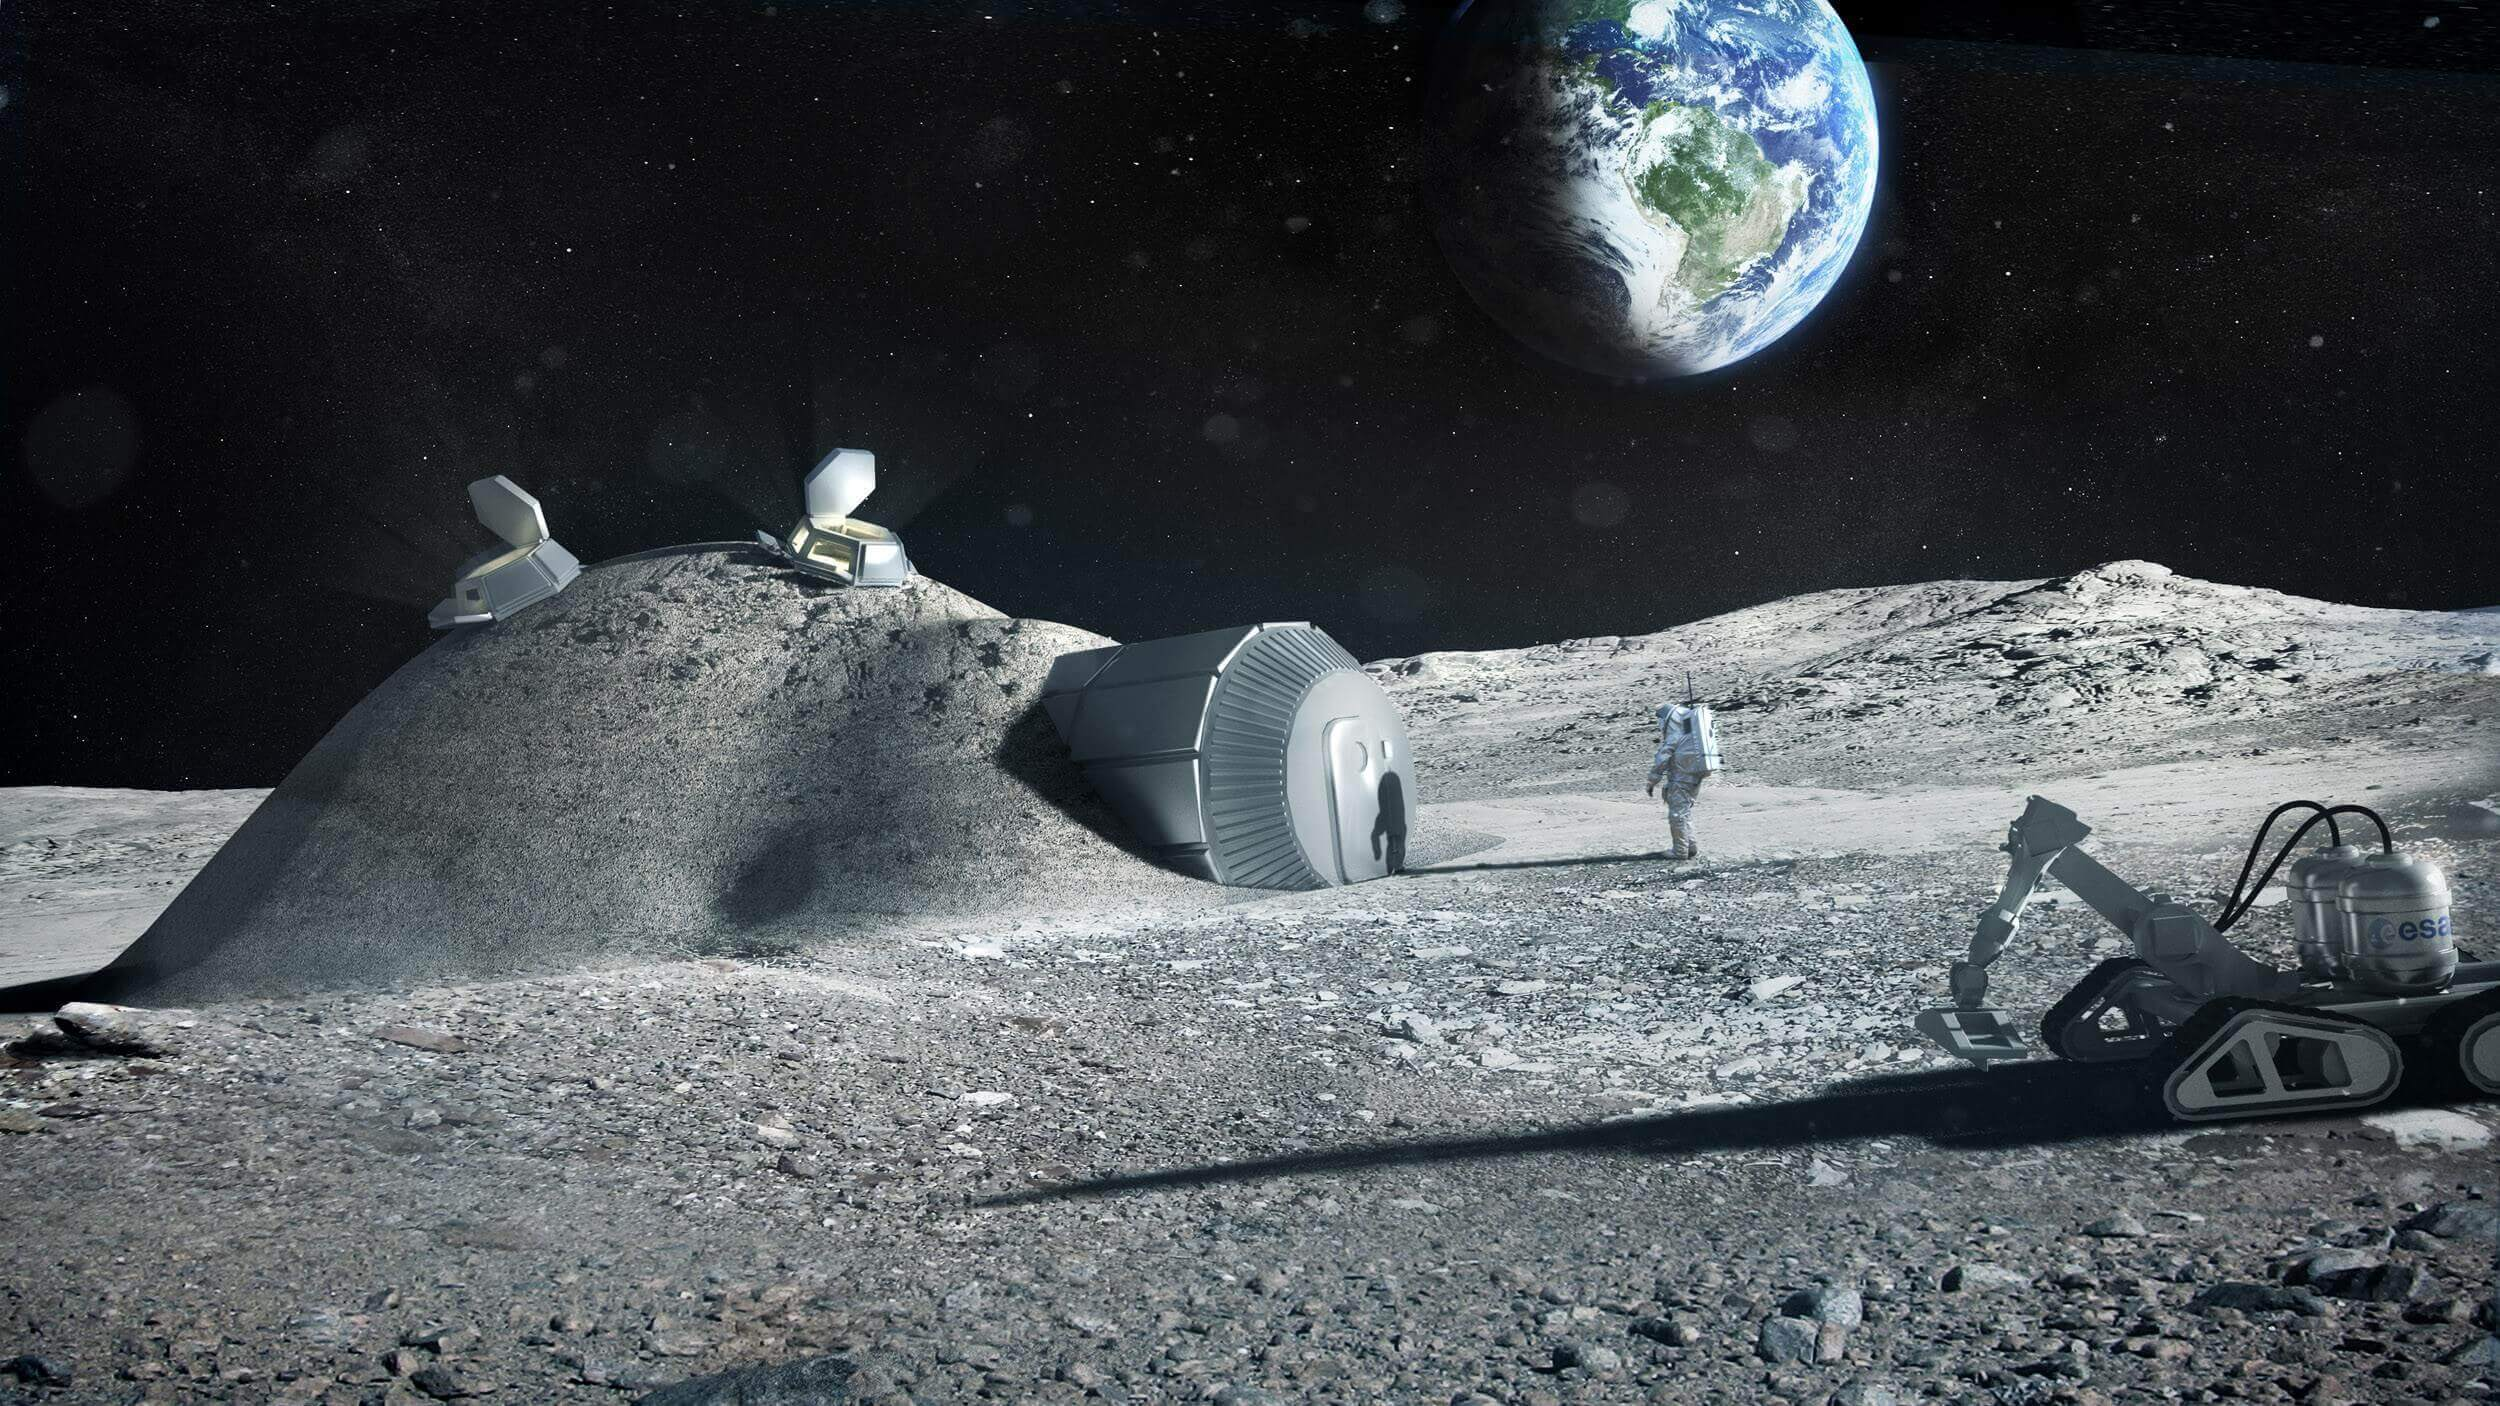 Russia And EU Reveal Plans For A 3D Printed Moonbase | All3DP